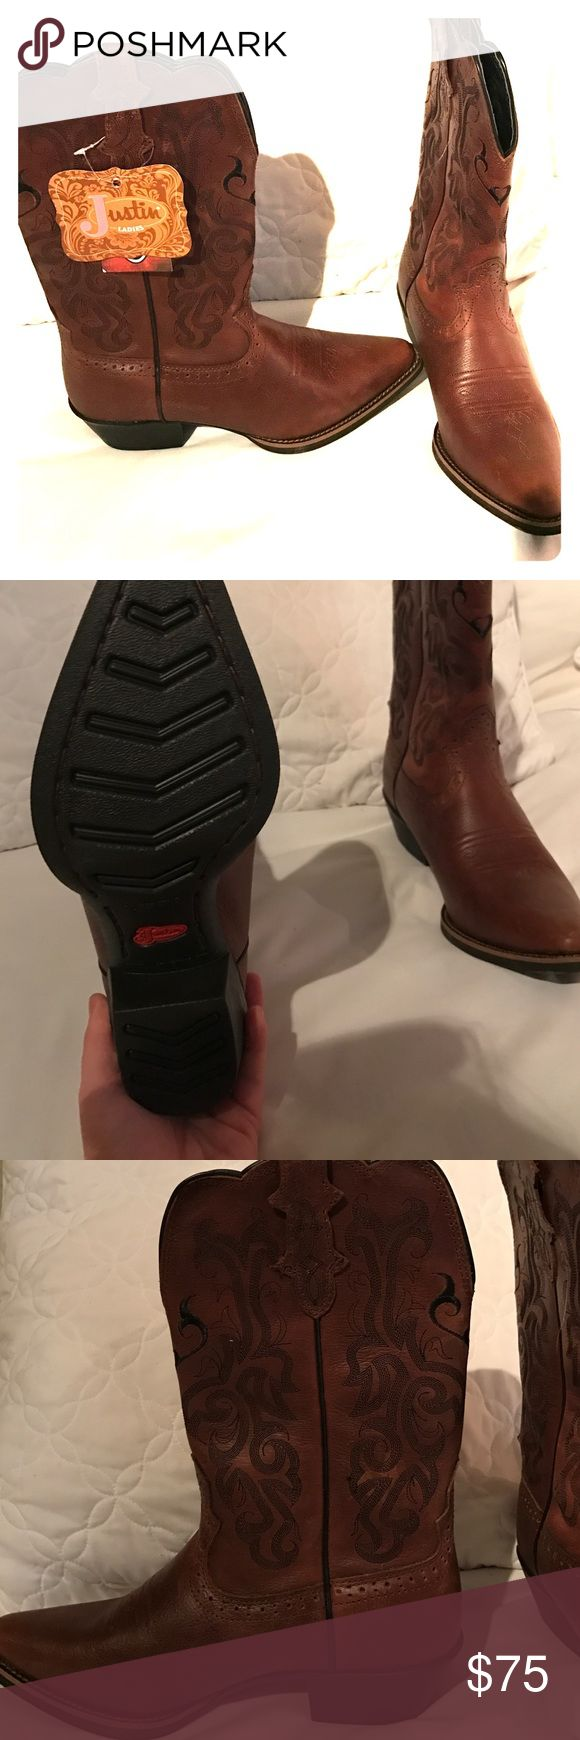 NWT Justin Ladies cowboy boots Brand new never worn Justin boots! They were a gift and are too big for me! Size 9.5 Justin Boots Shoes Ankle Boots & Booties